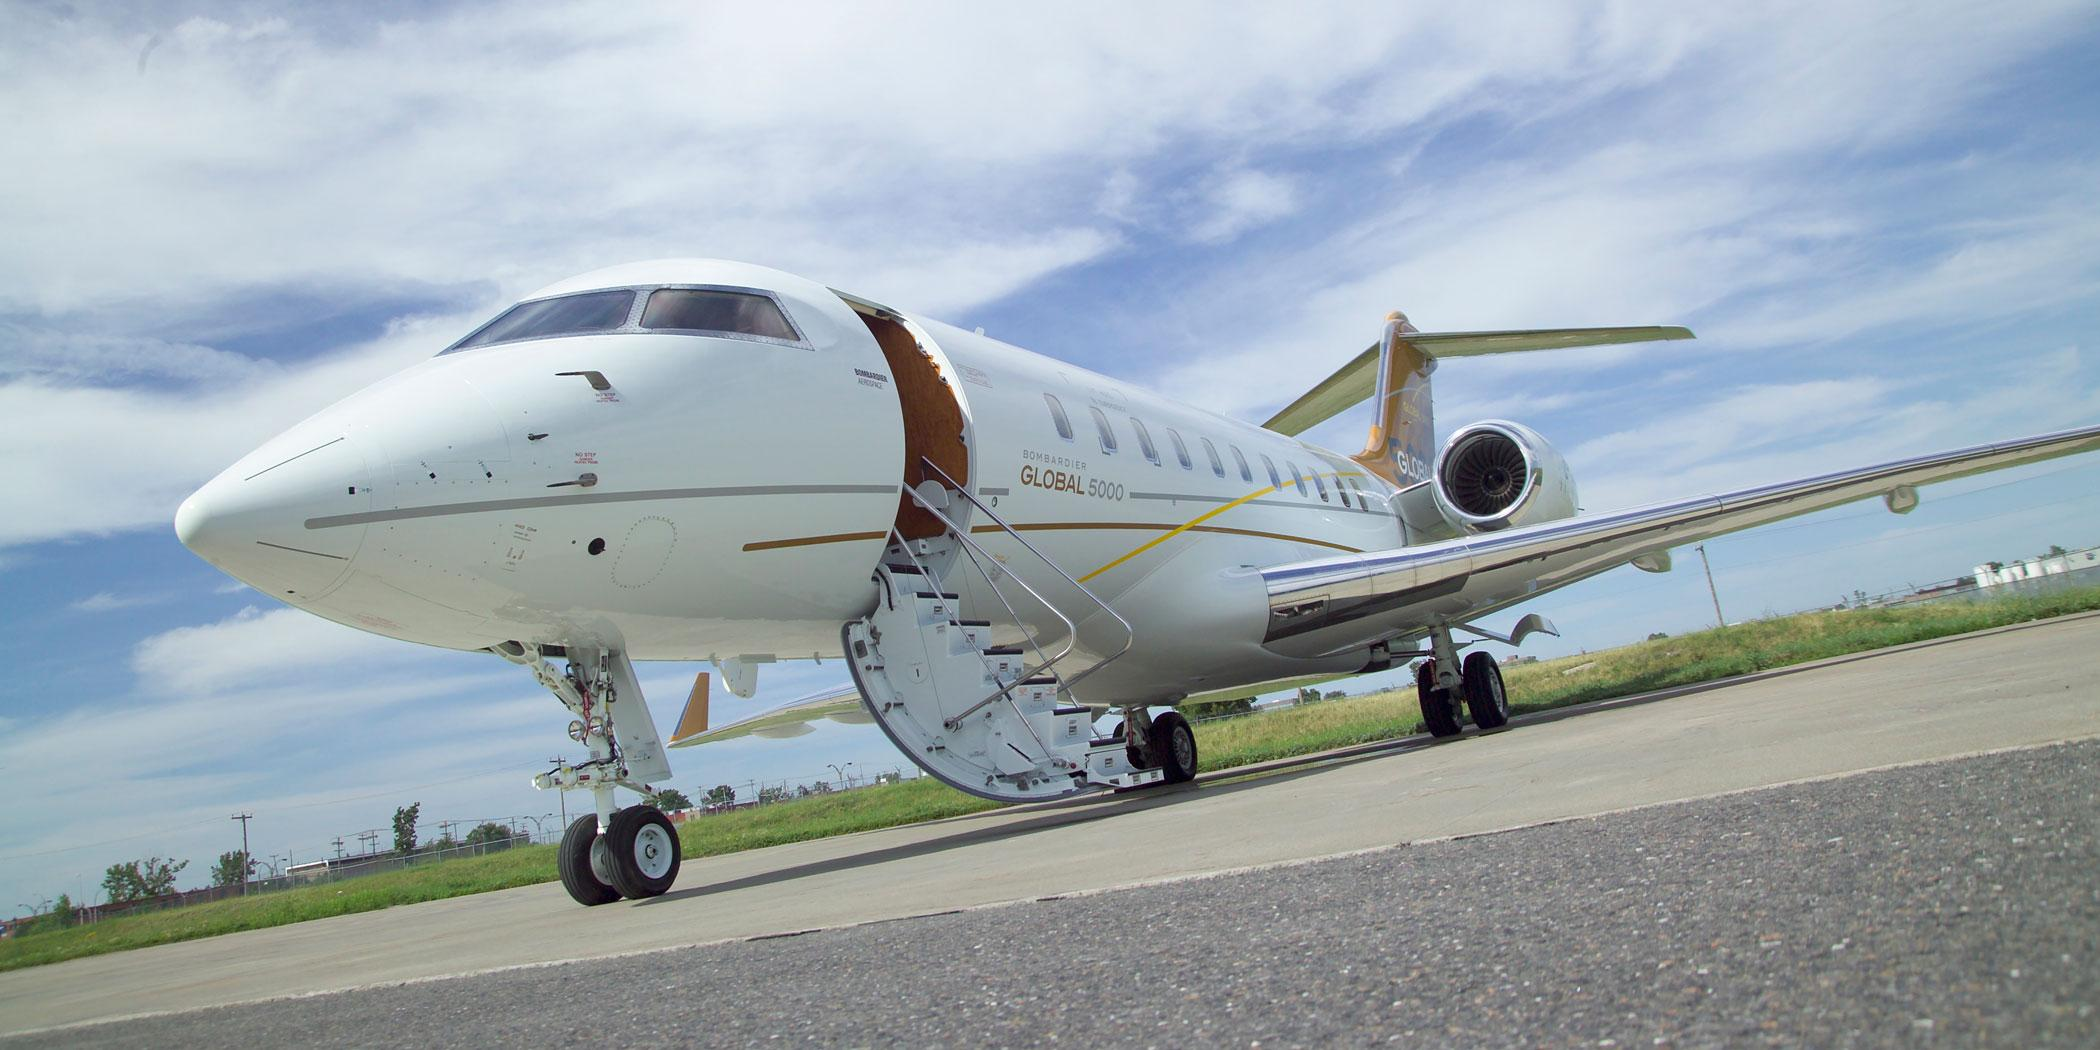 Global 5000 on tarmac